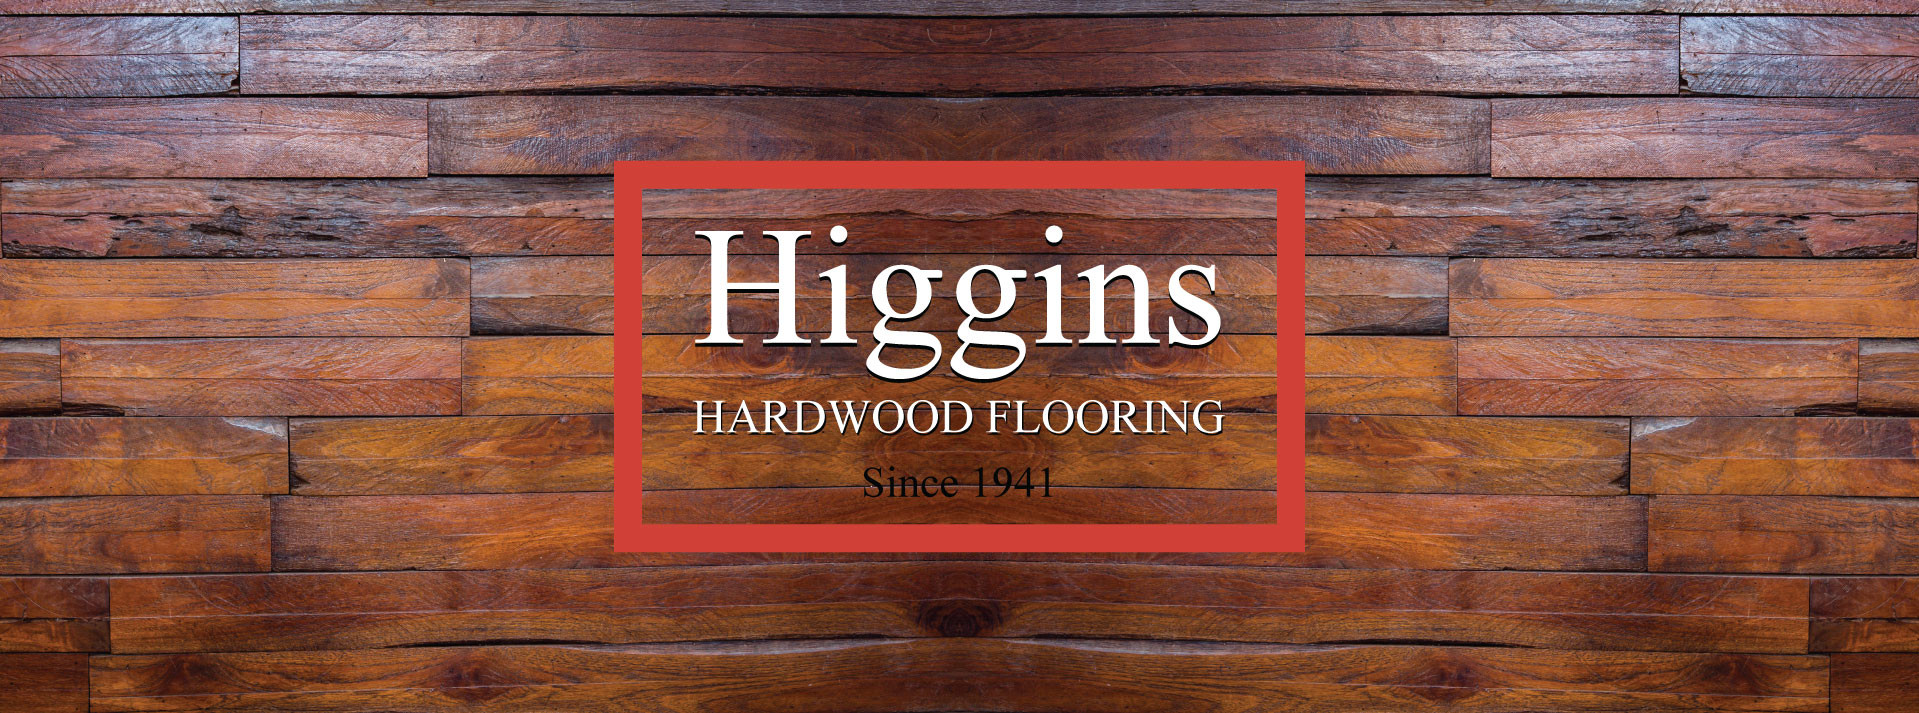 hardwood floor refinishing okc of higgins hardwood flooring in peterborough oshawa lindsay ajax intended for office hours